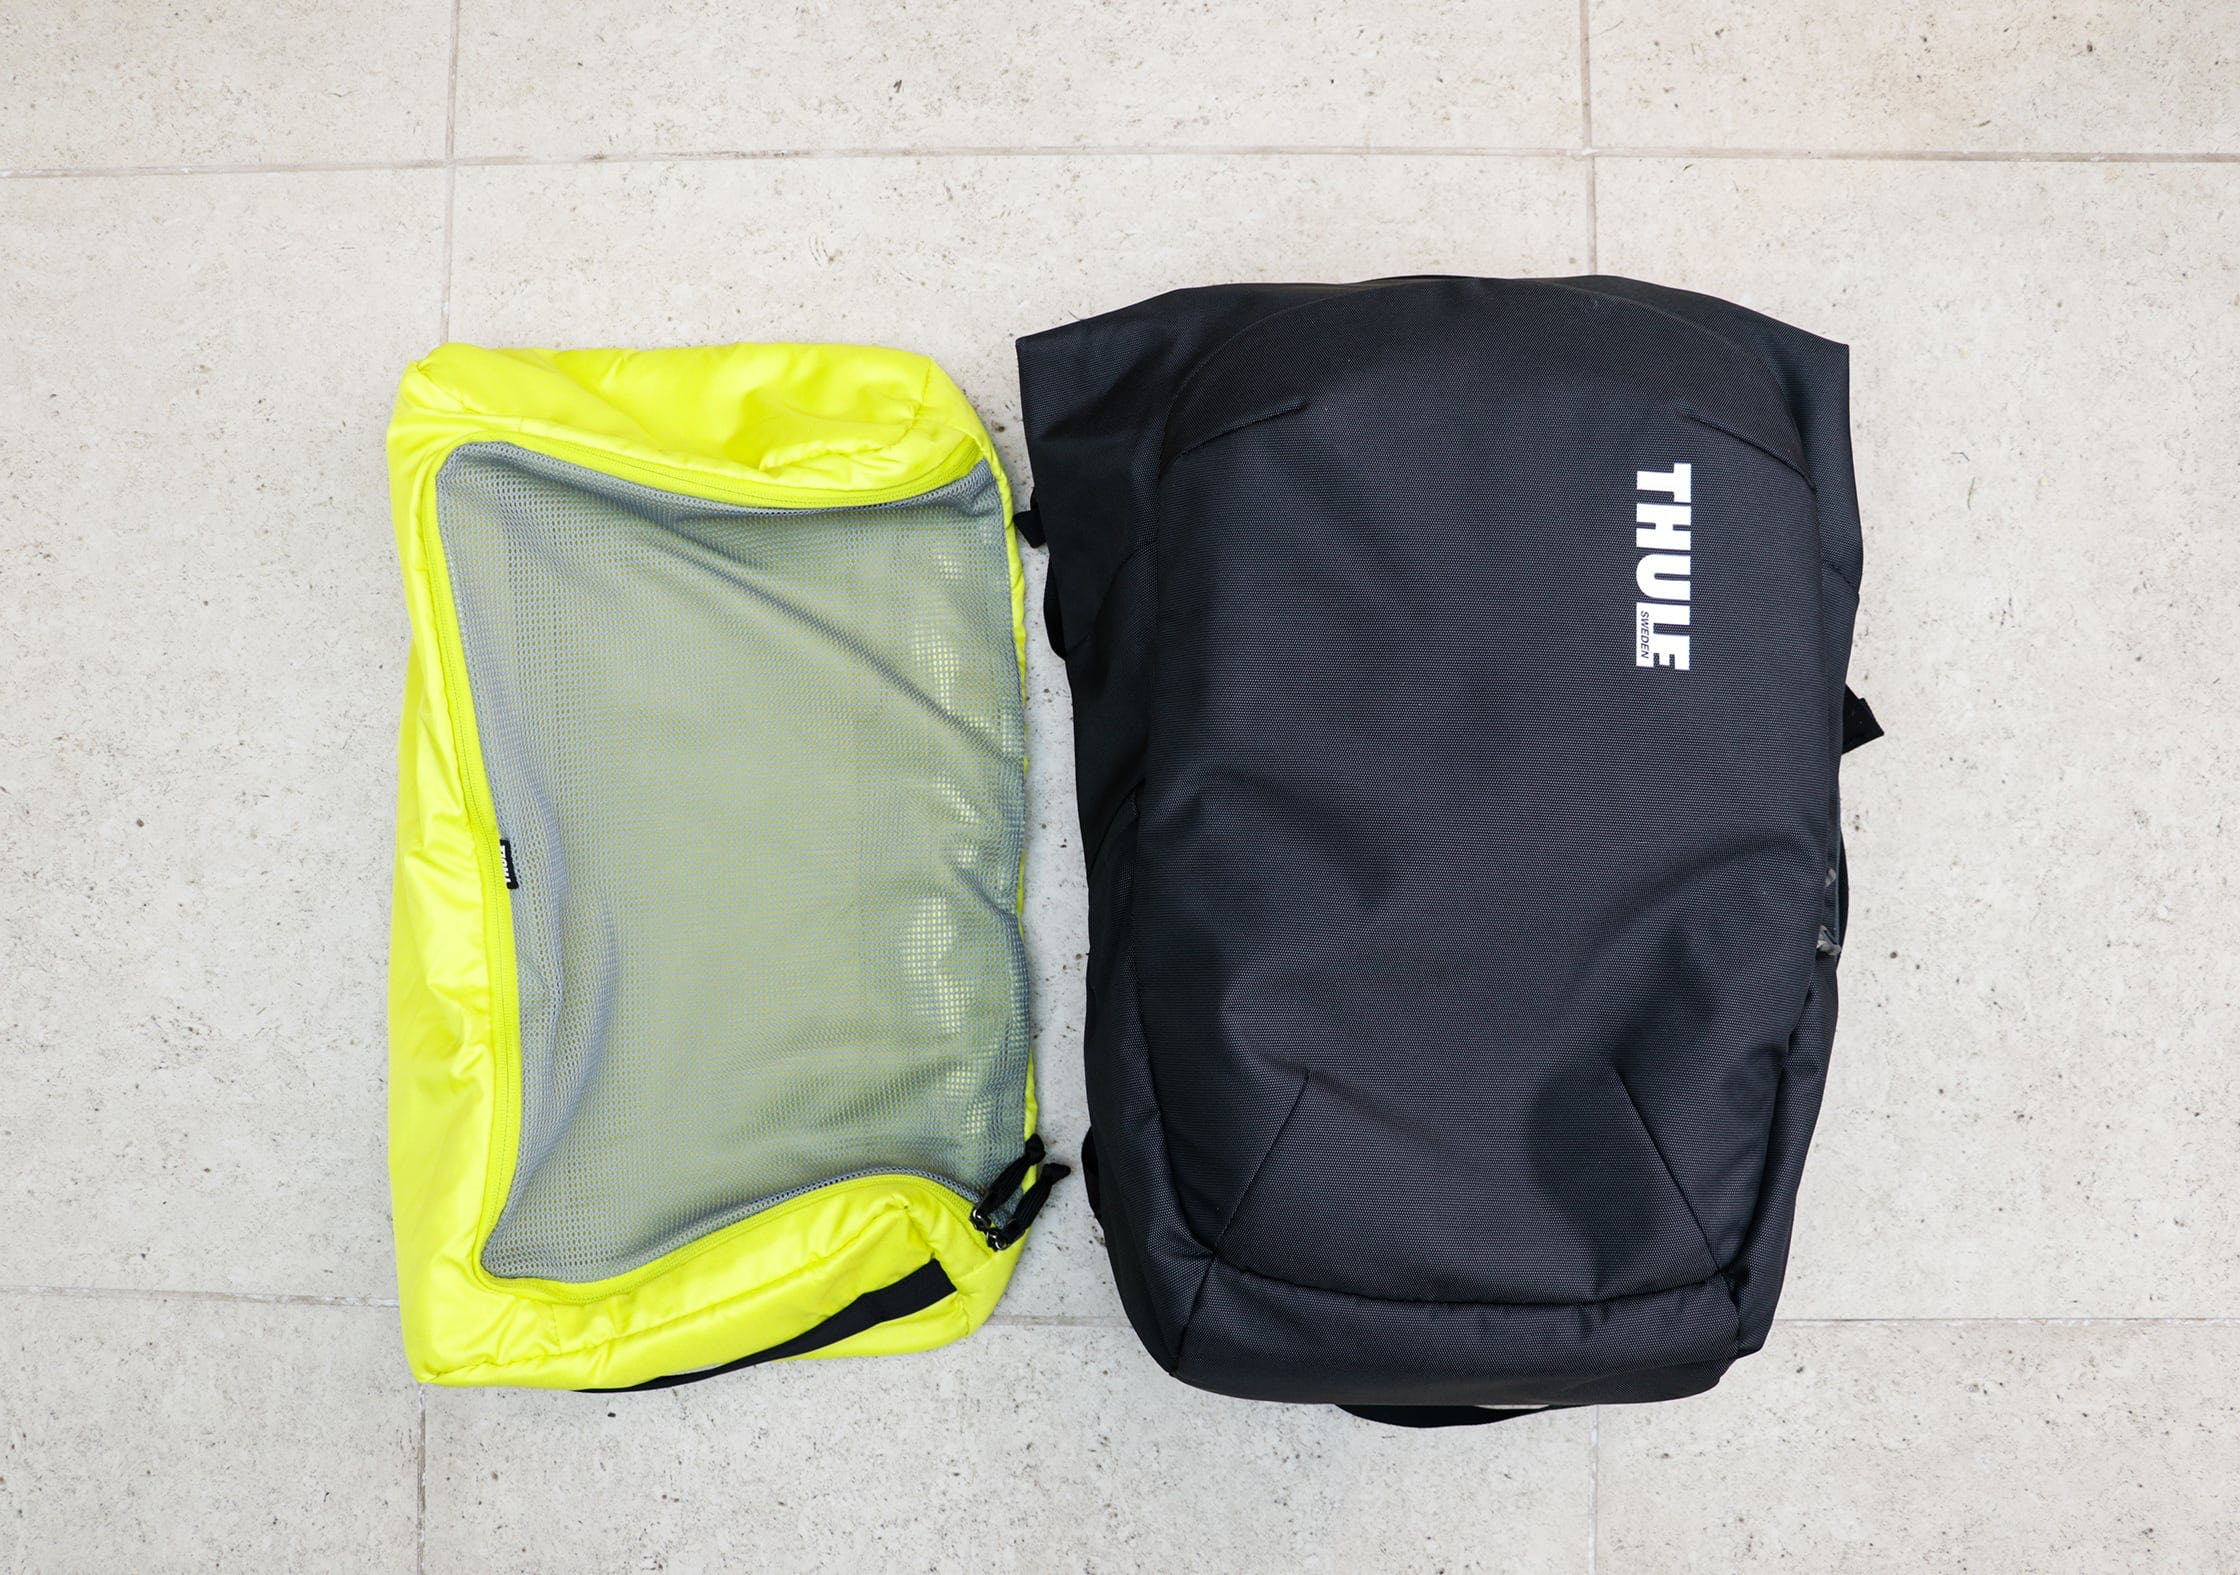 Thule Subterra Packing Cube